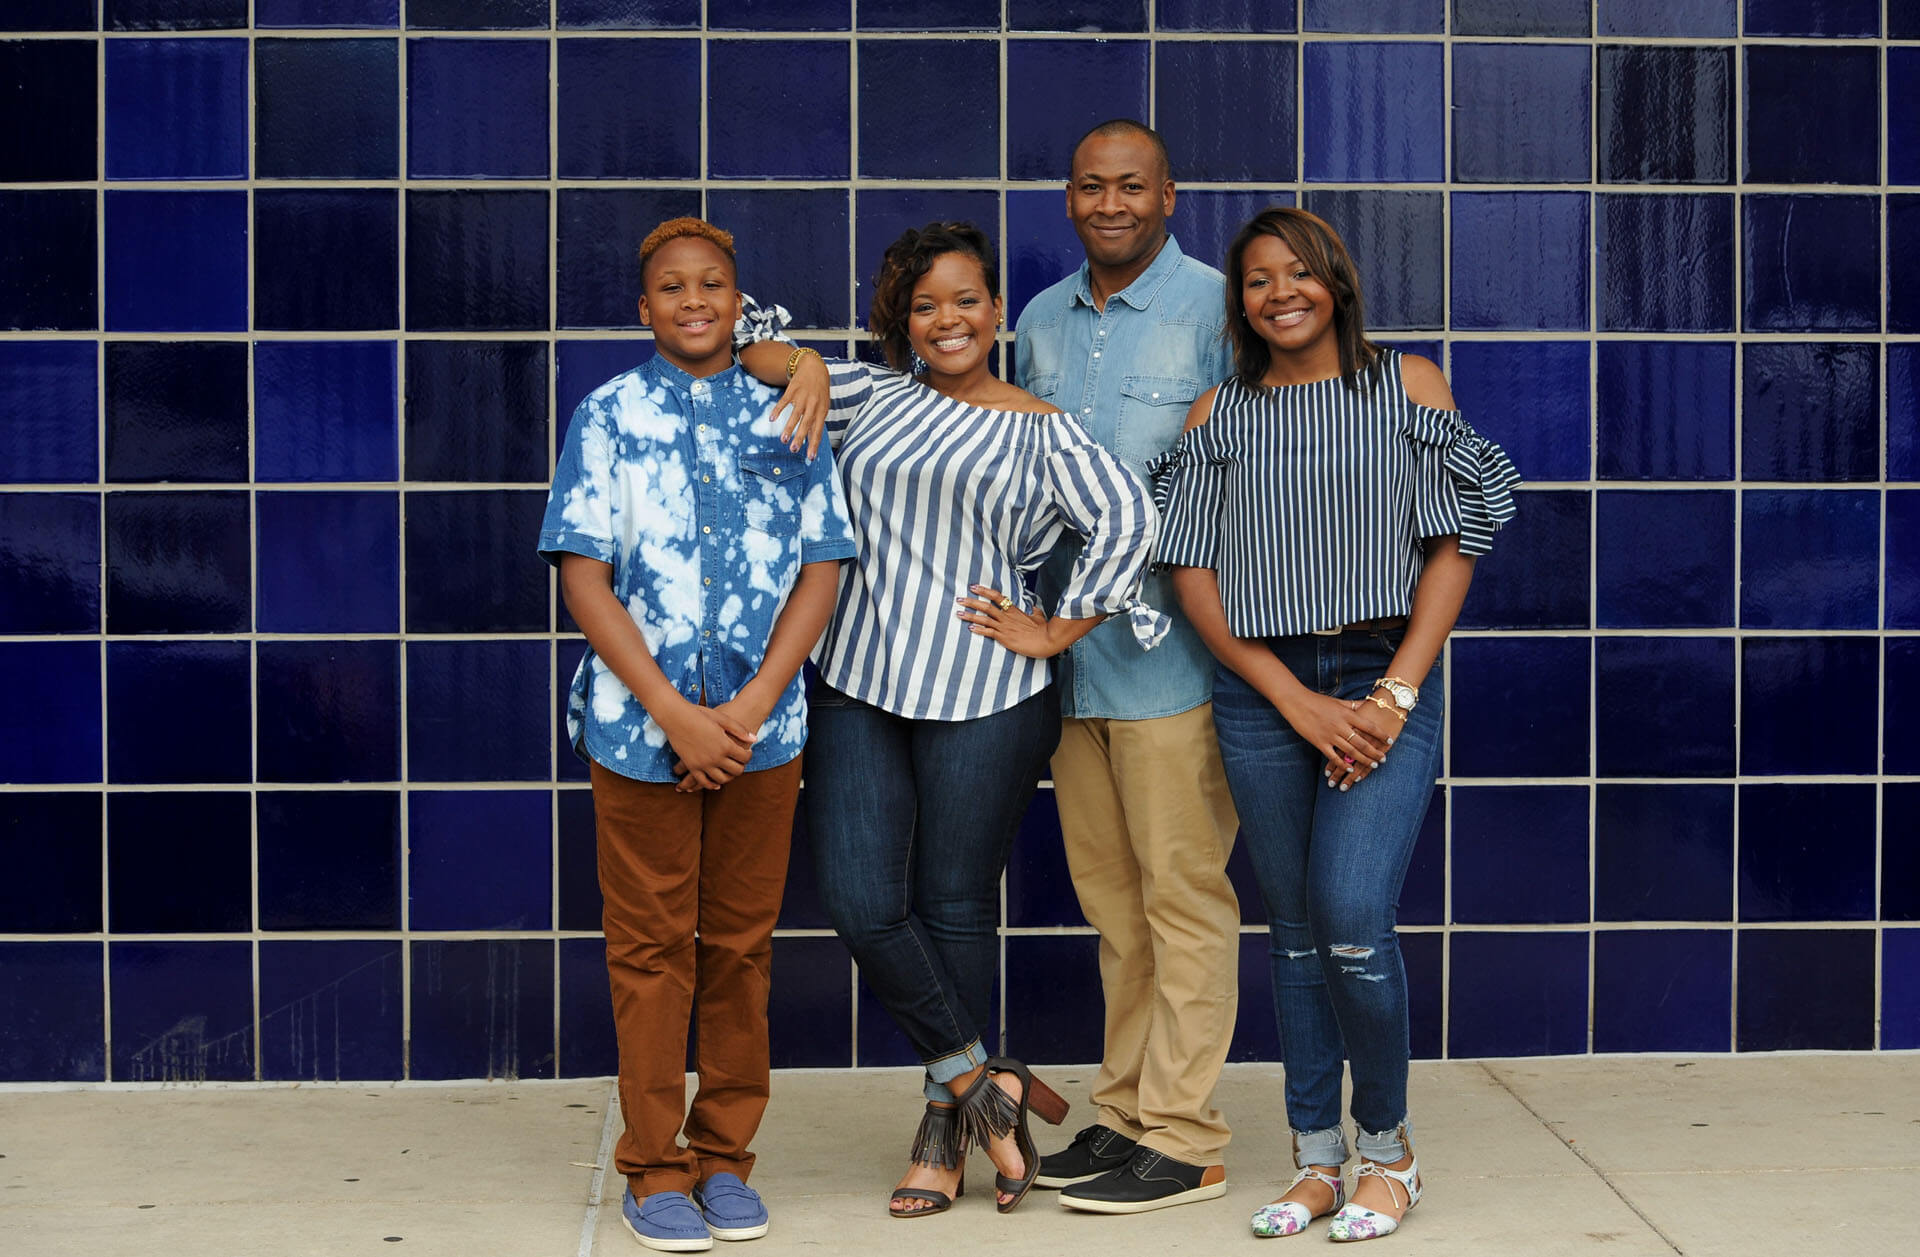 Fun family photo for clients looking for fun, casual family photos in Detroit, Michigan.